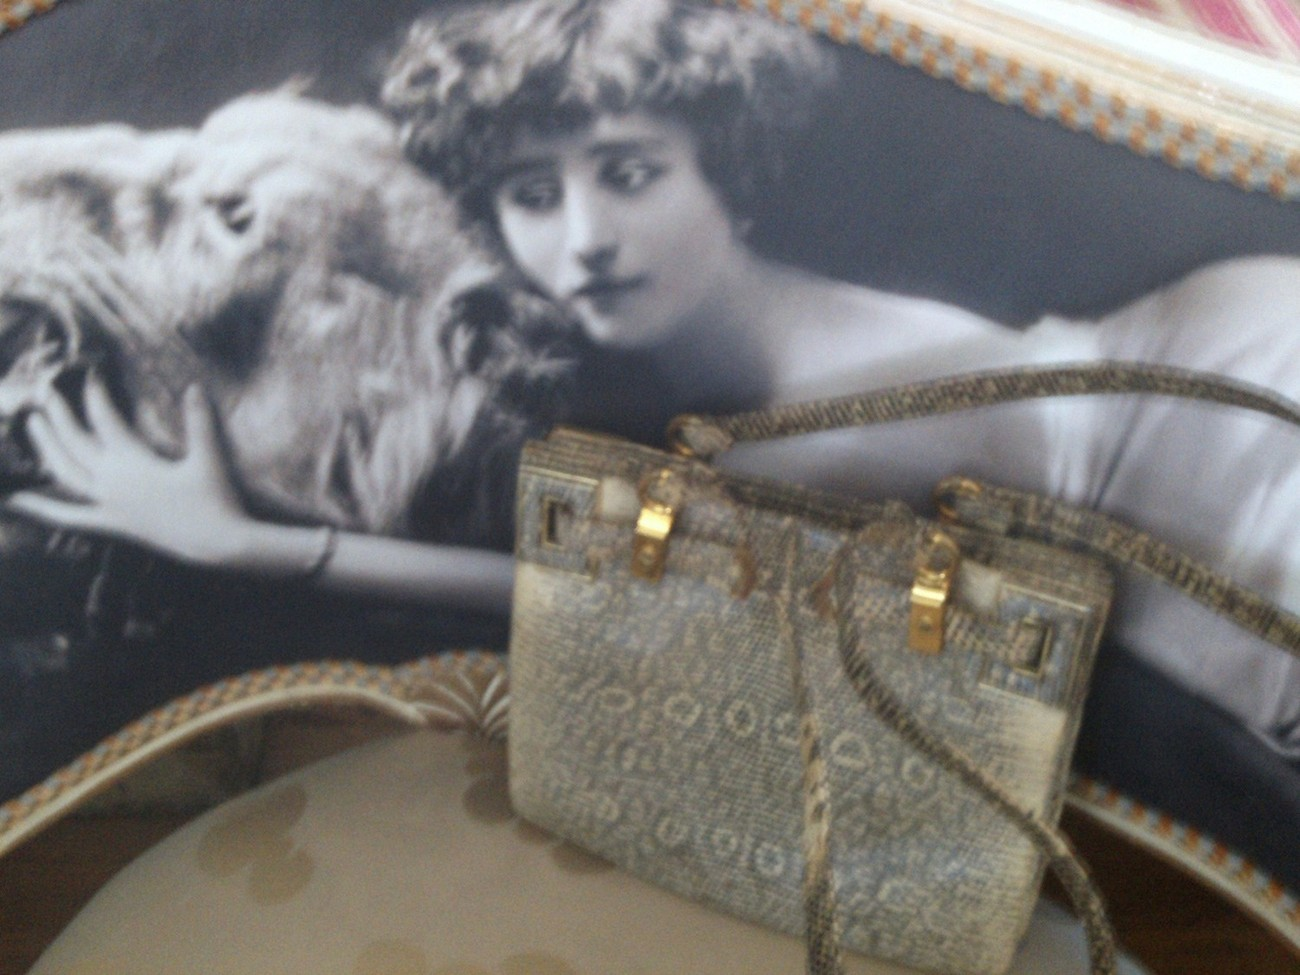 Judith Leiber Vintage Lizard Purse, Bag, Handbag,